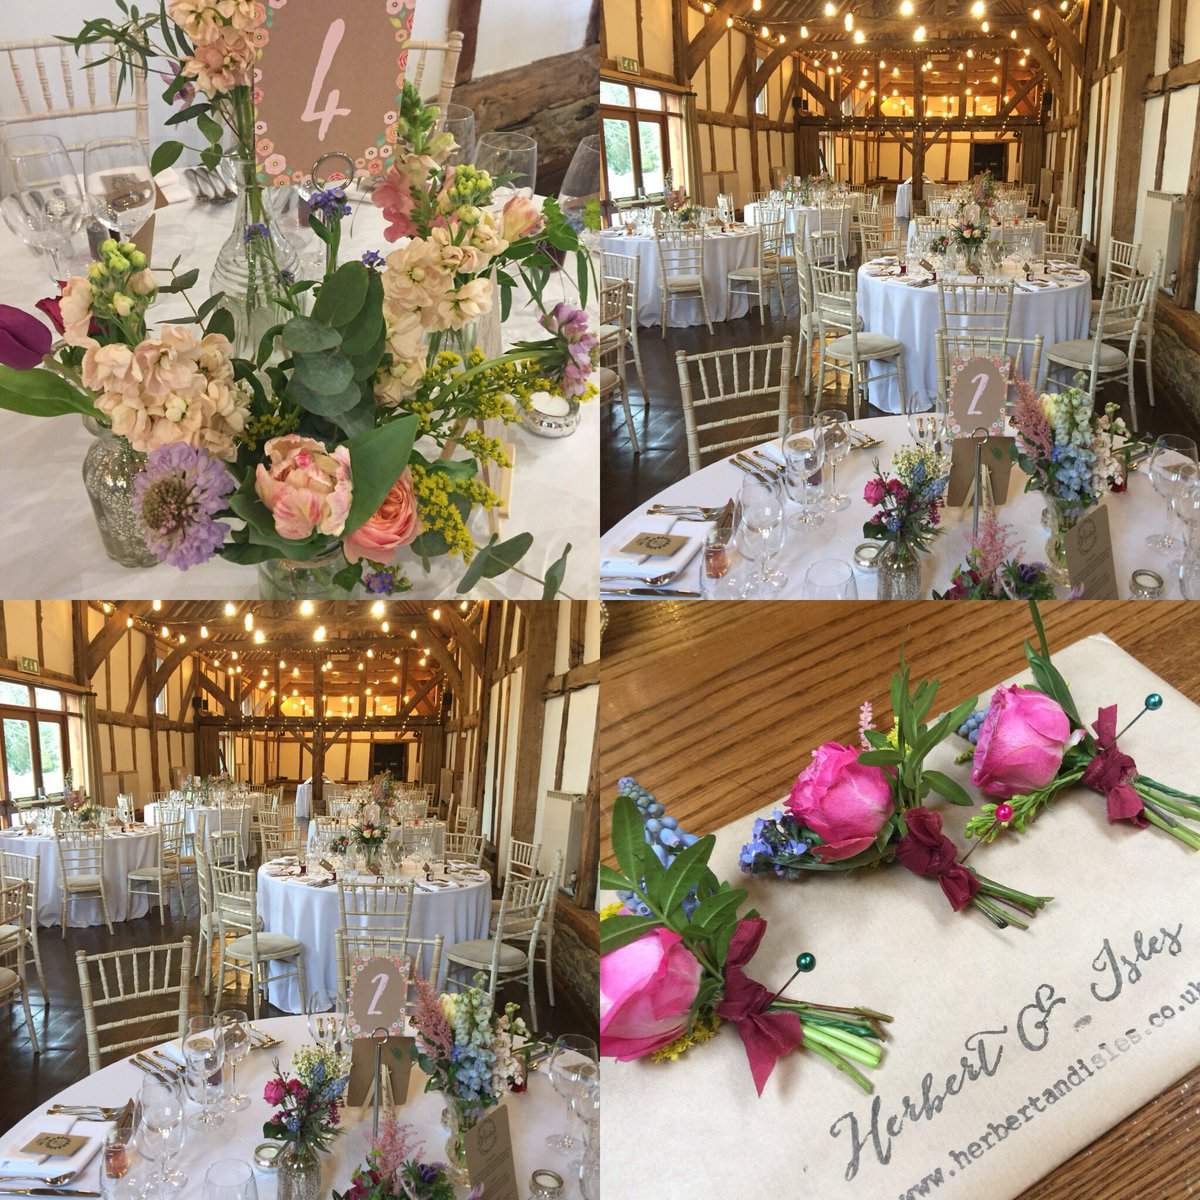 Lovely warm glow in the #barn today to welcome the #wedding guests!